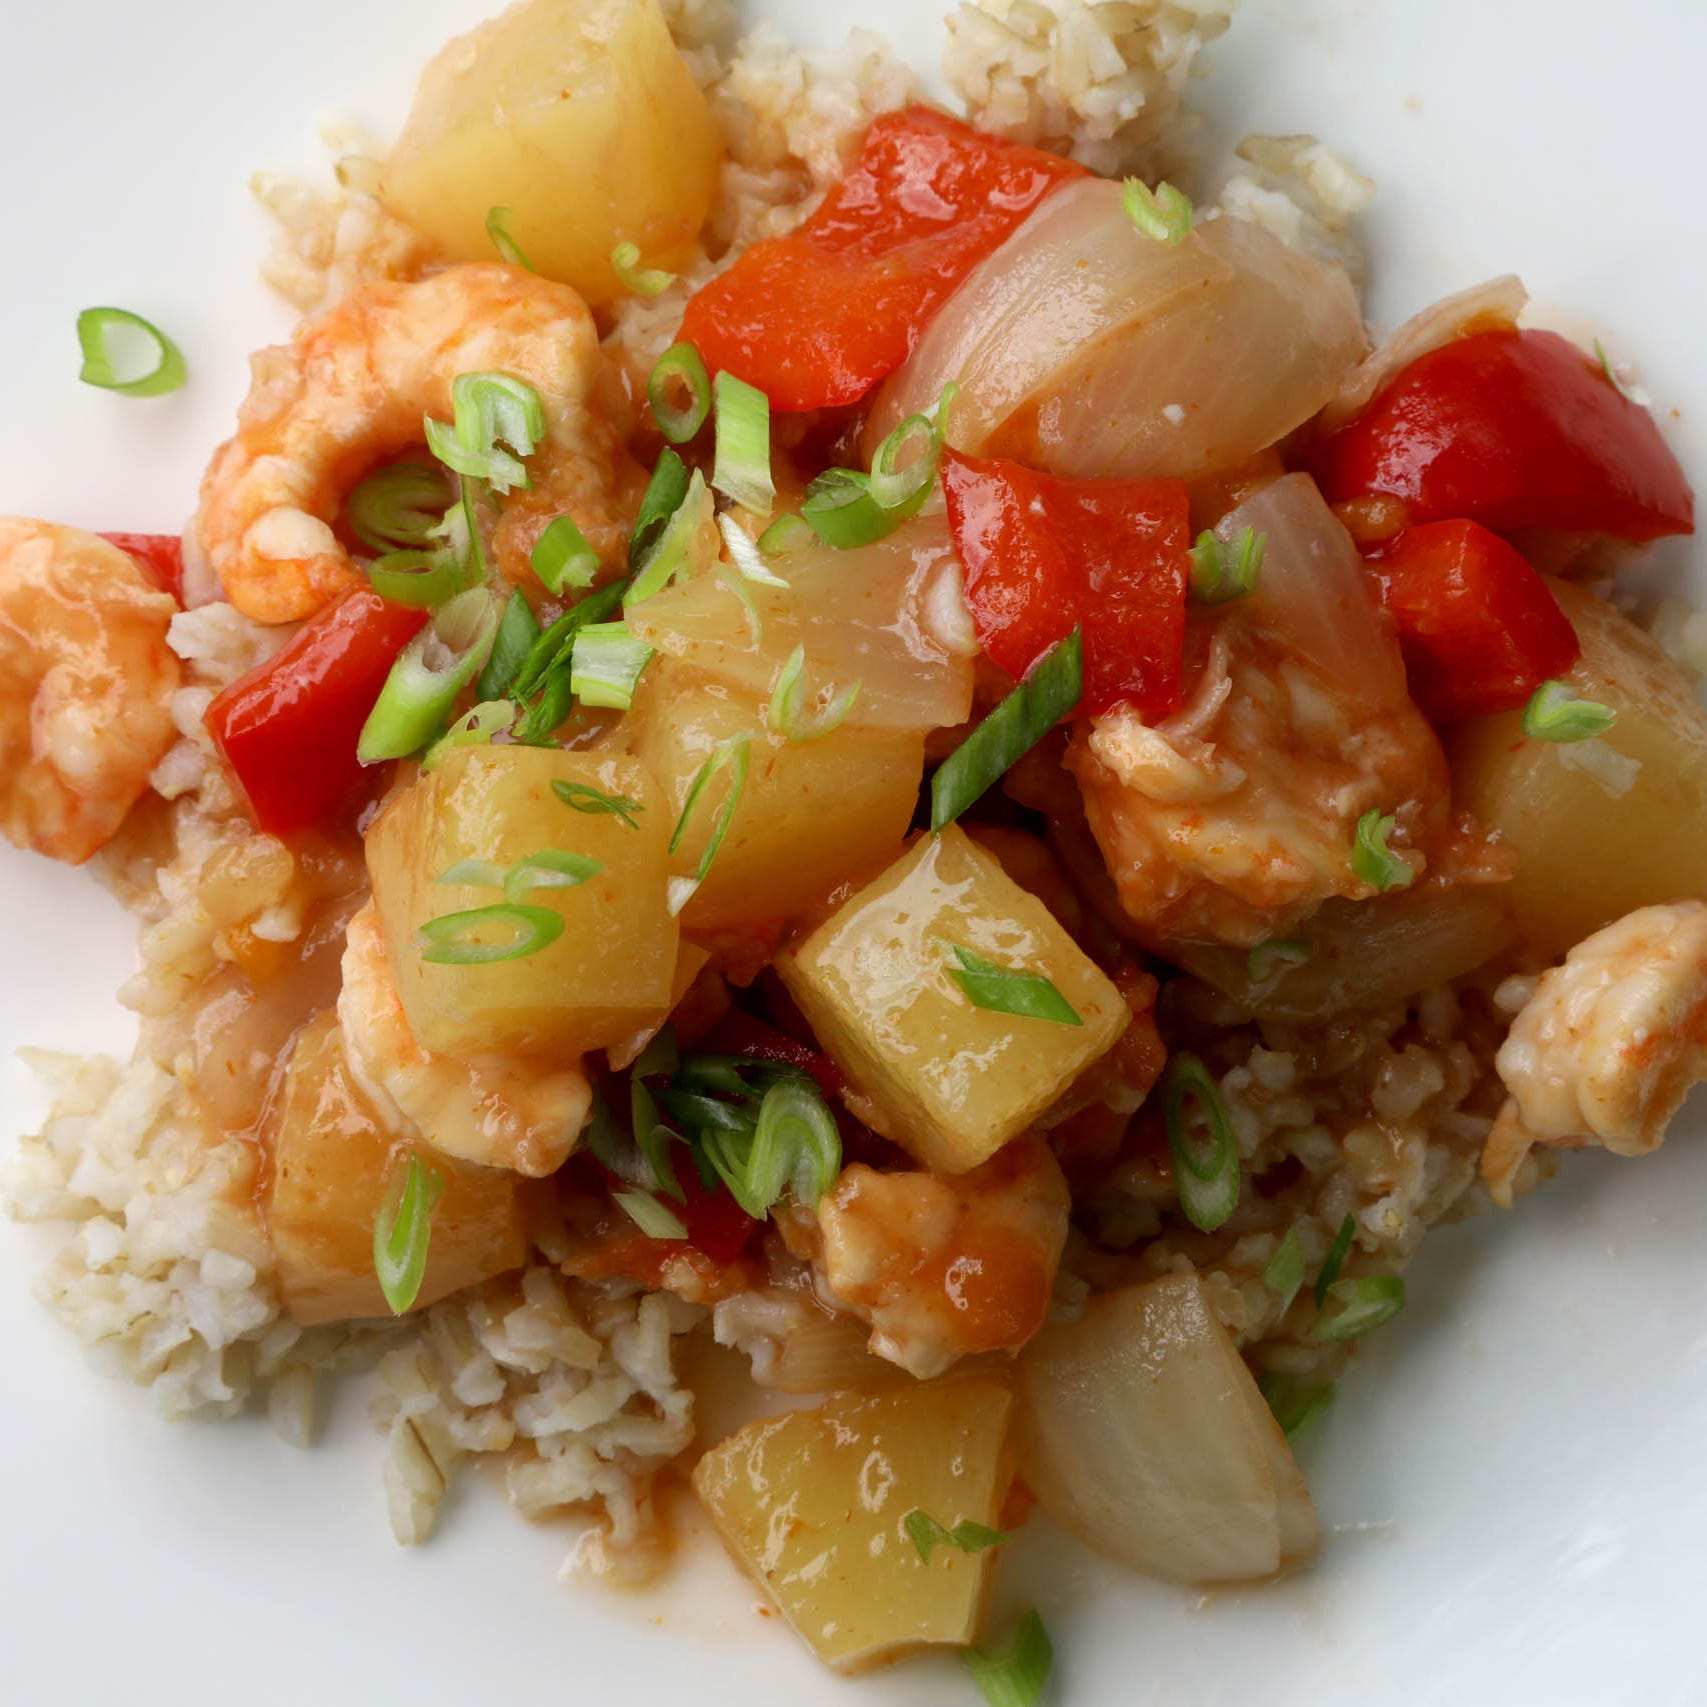 Sweet and Sour Shrimp easy to put together for oven or grill